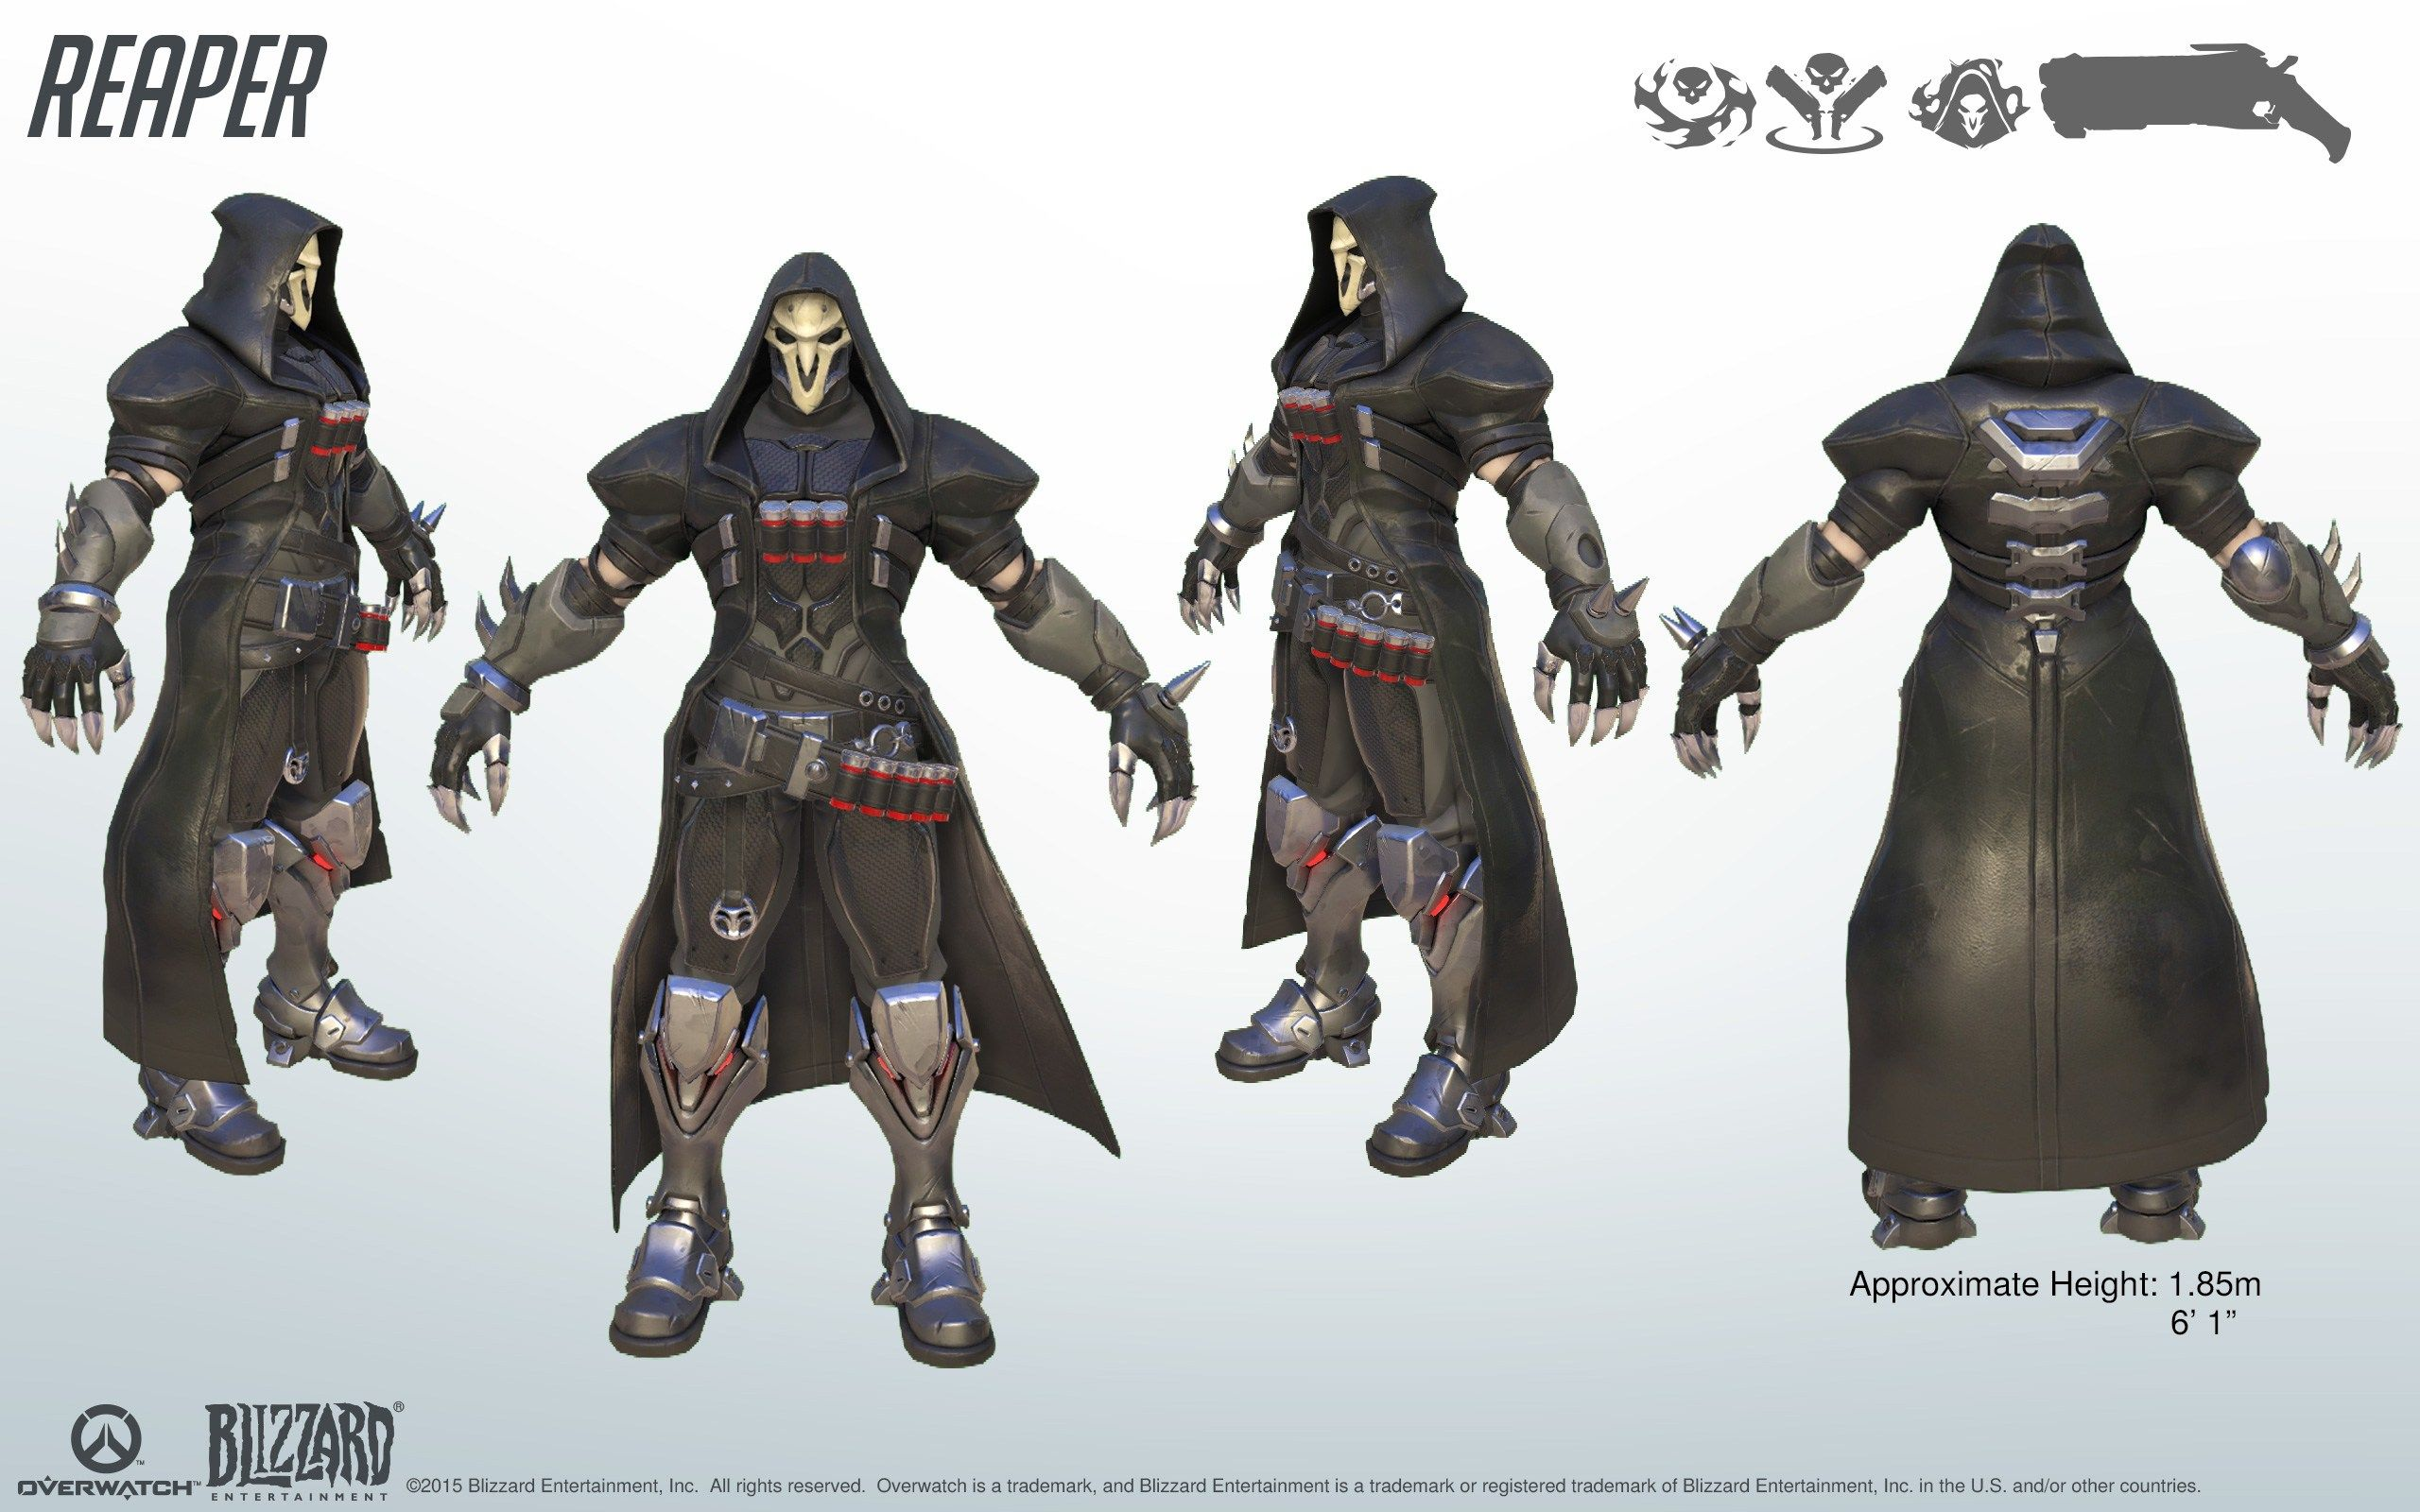 Overwatch Character Design Concept Art : Reaper overwatch model sheet turnaround